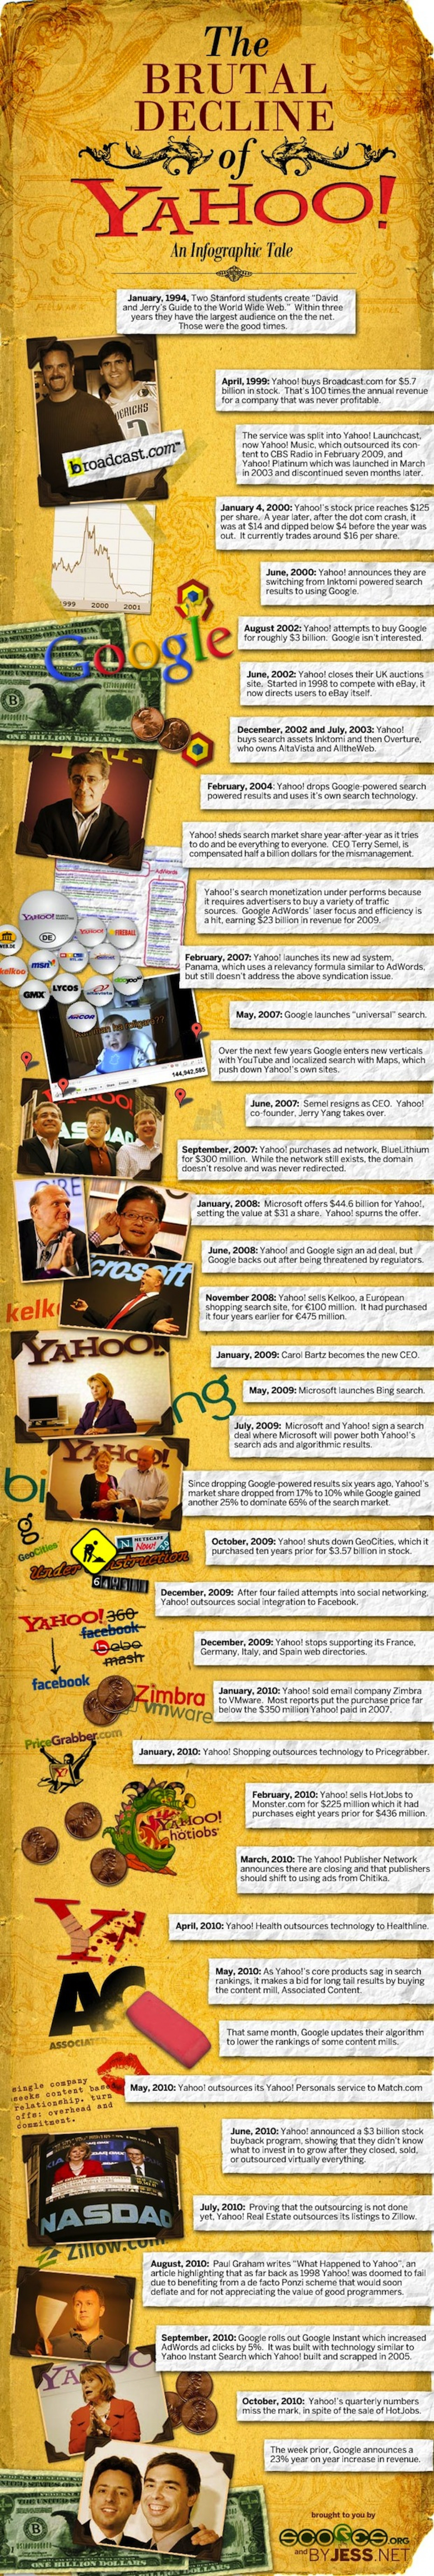 The Brutal Decline of Yahoo! Infographic